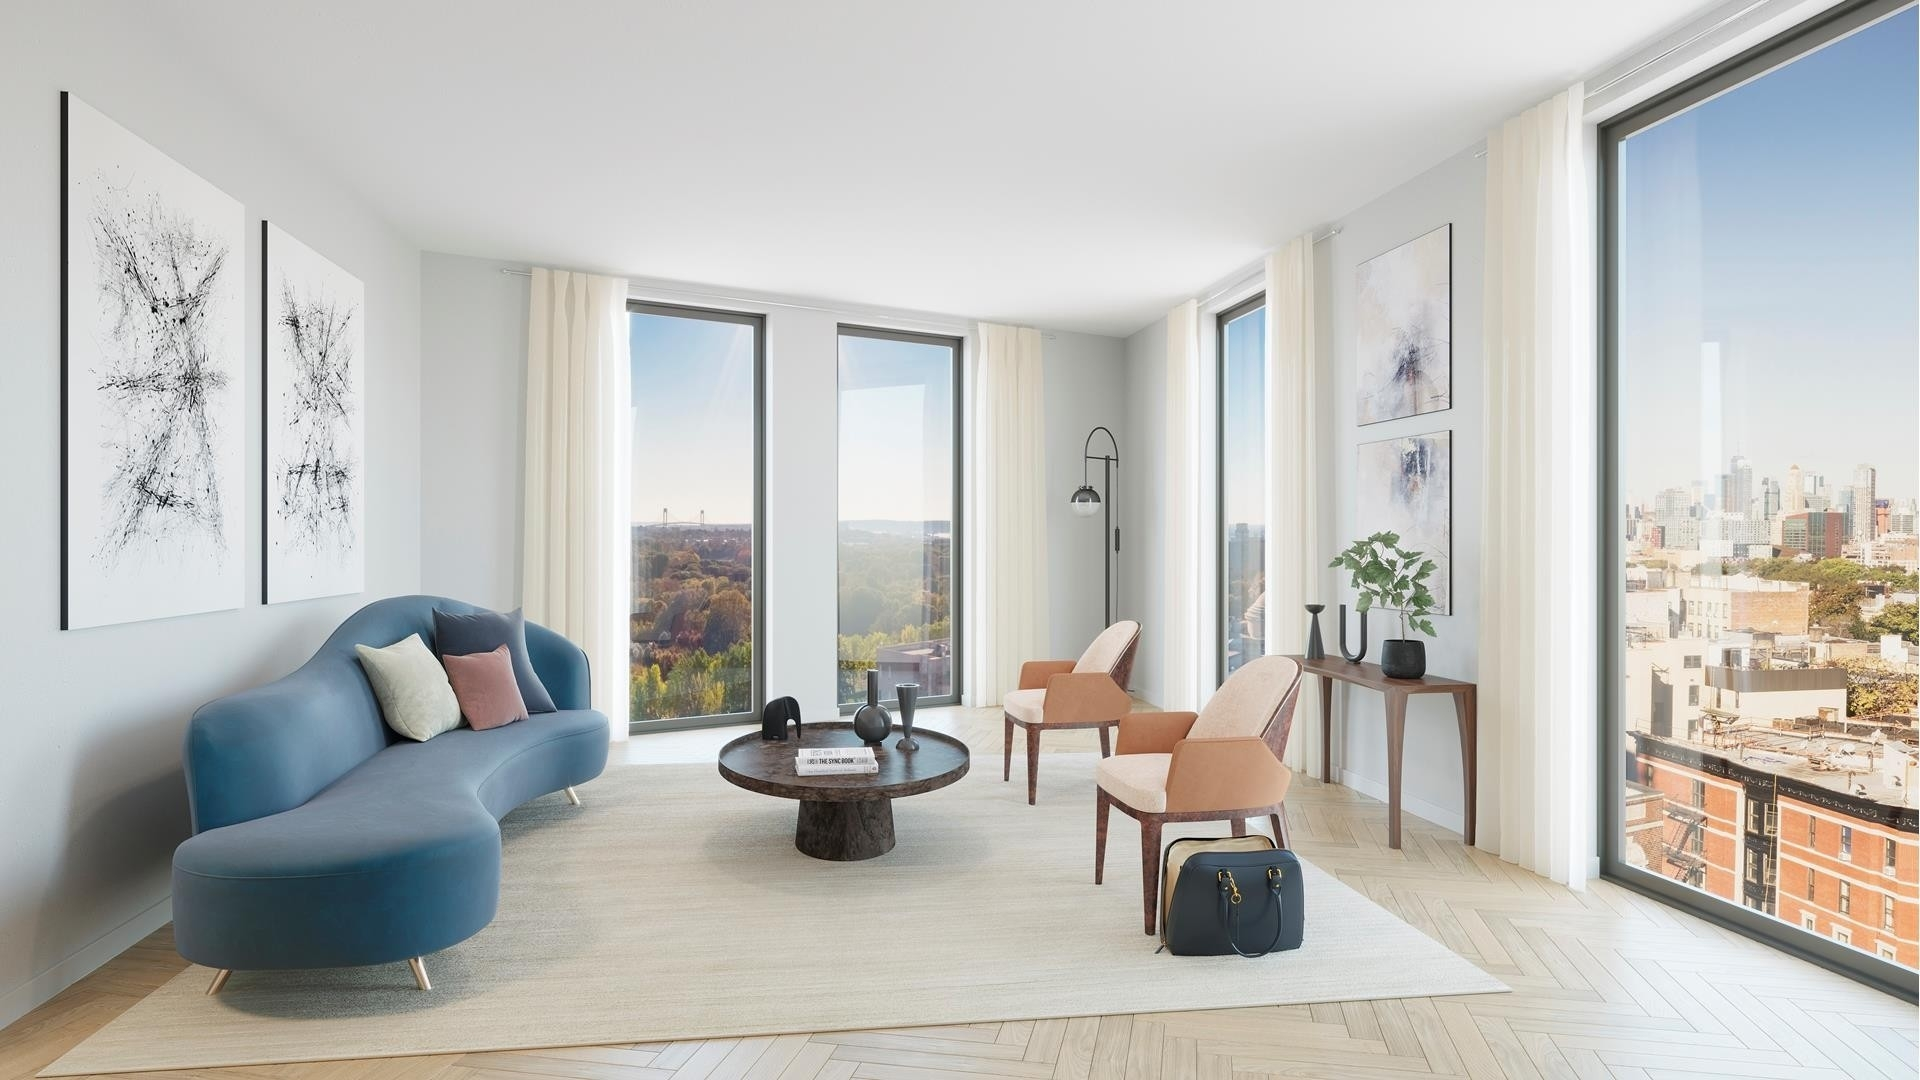 Condominium for Sale at 805 Washington Avenue, 8B Prospect Heights, Brooklyn, NY 11238